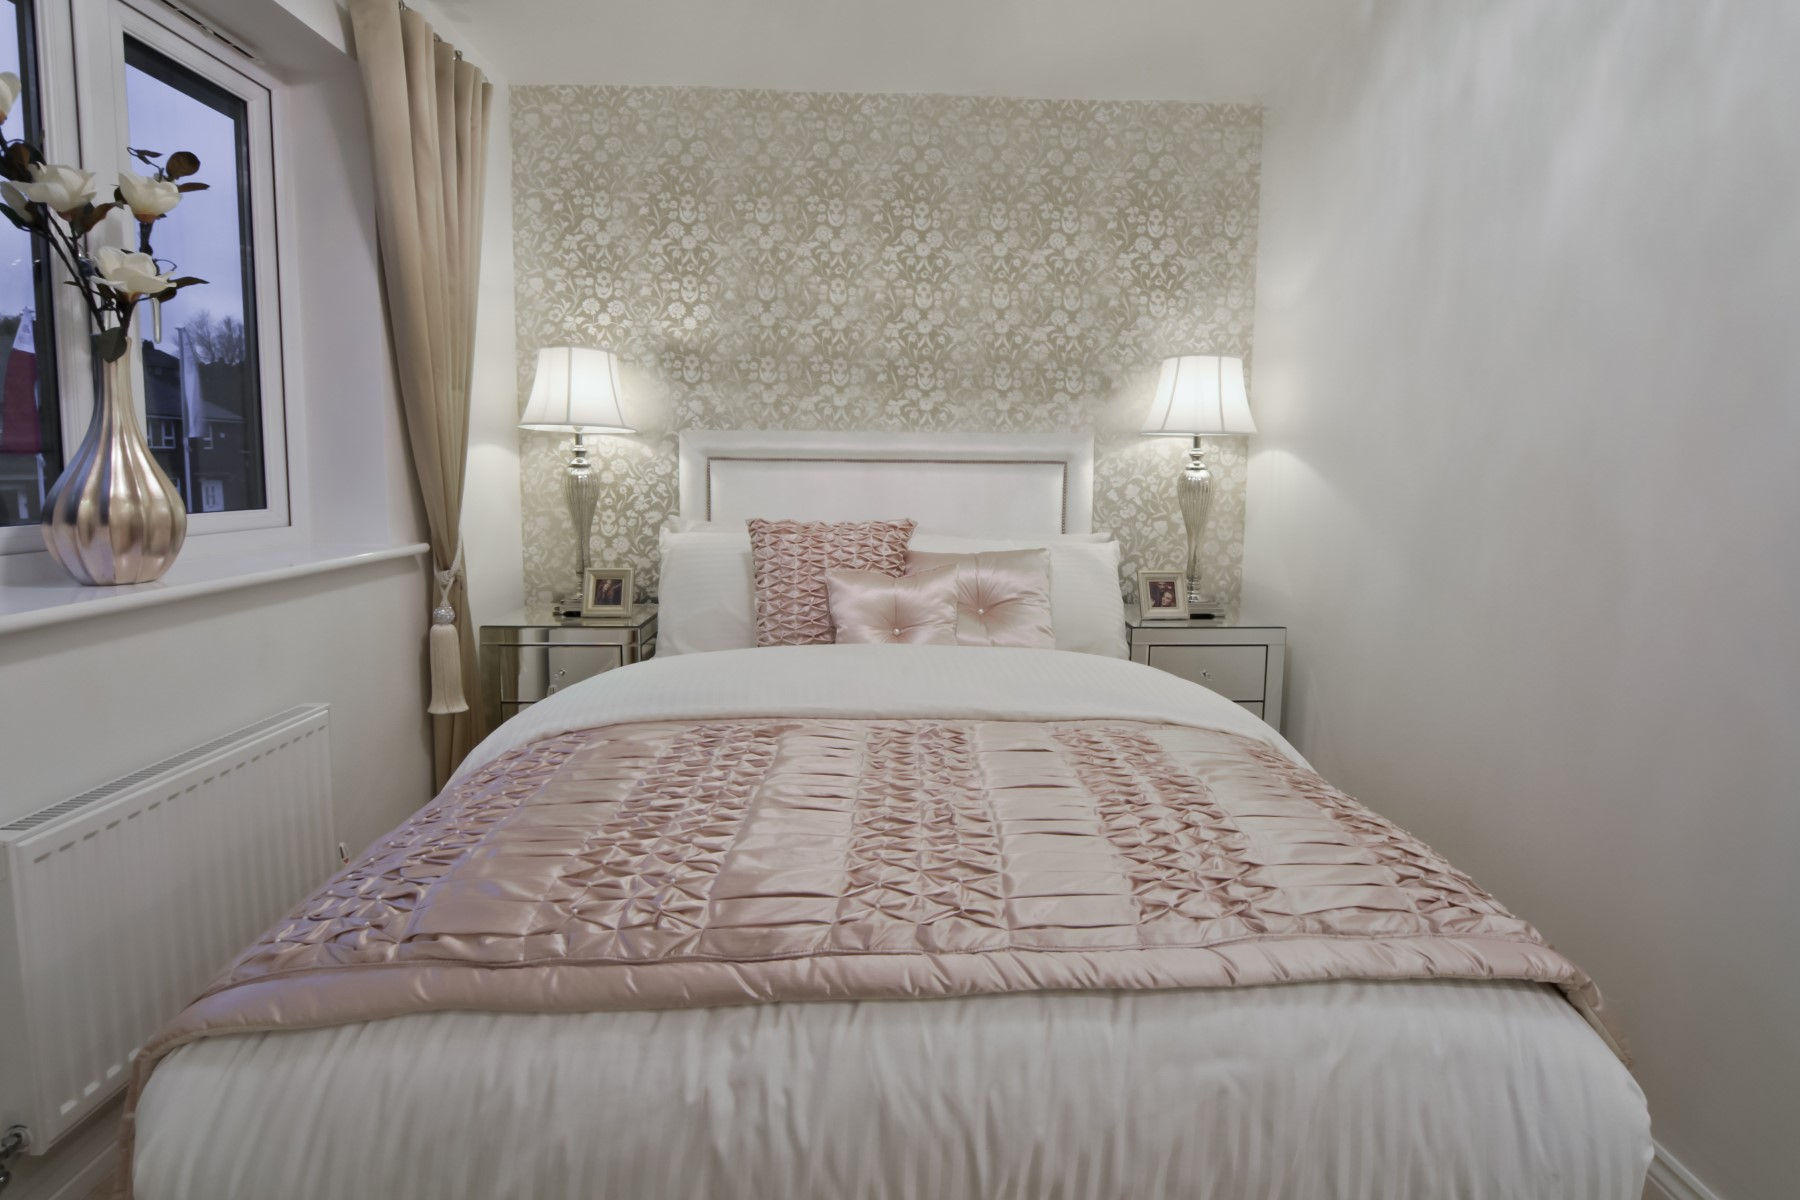 Earlsford Showhome Master Bedroom - Sandbrook View